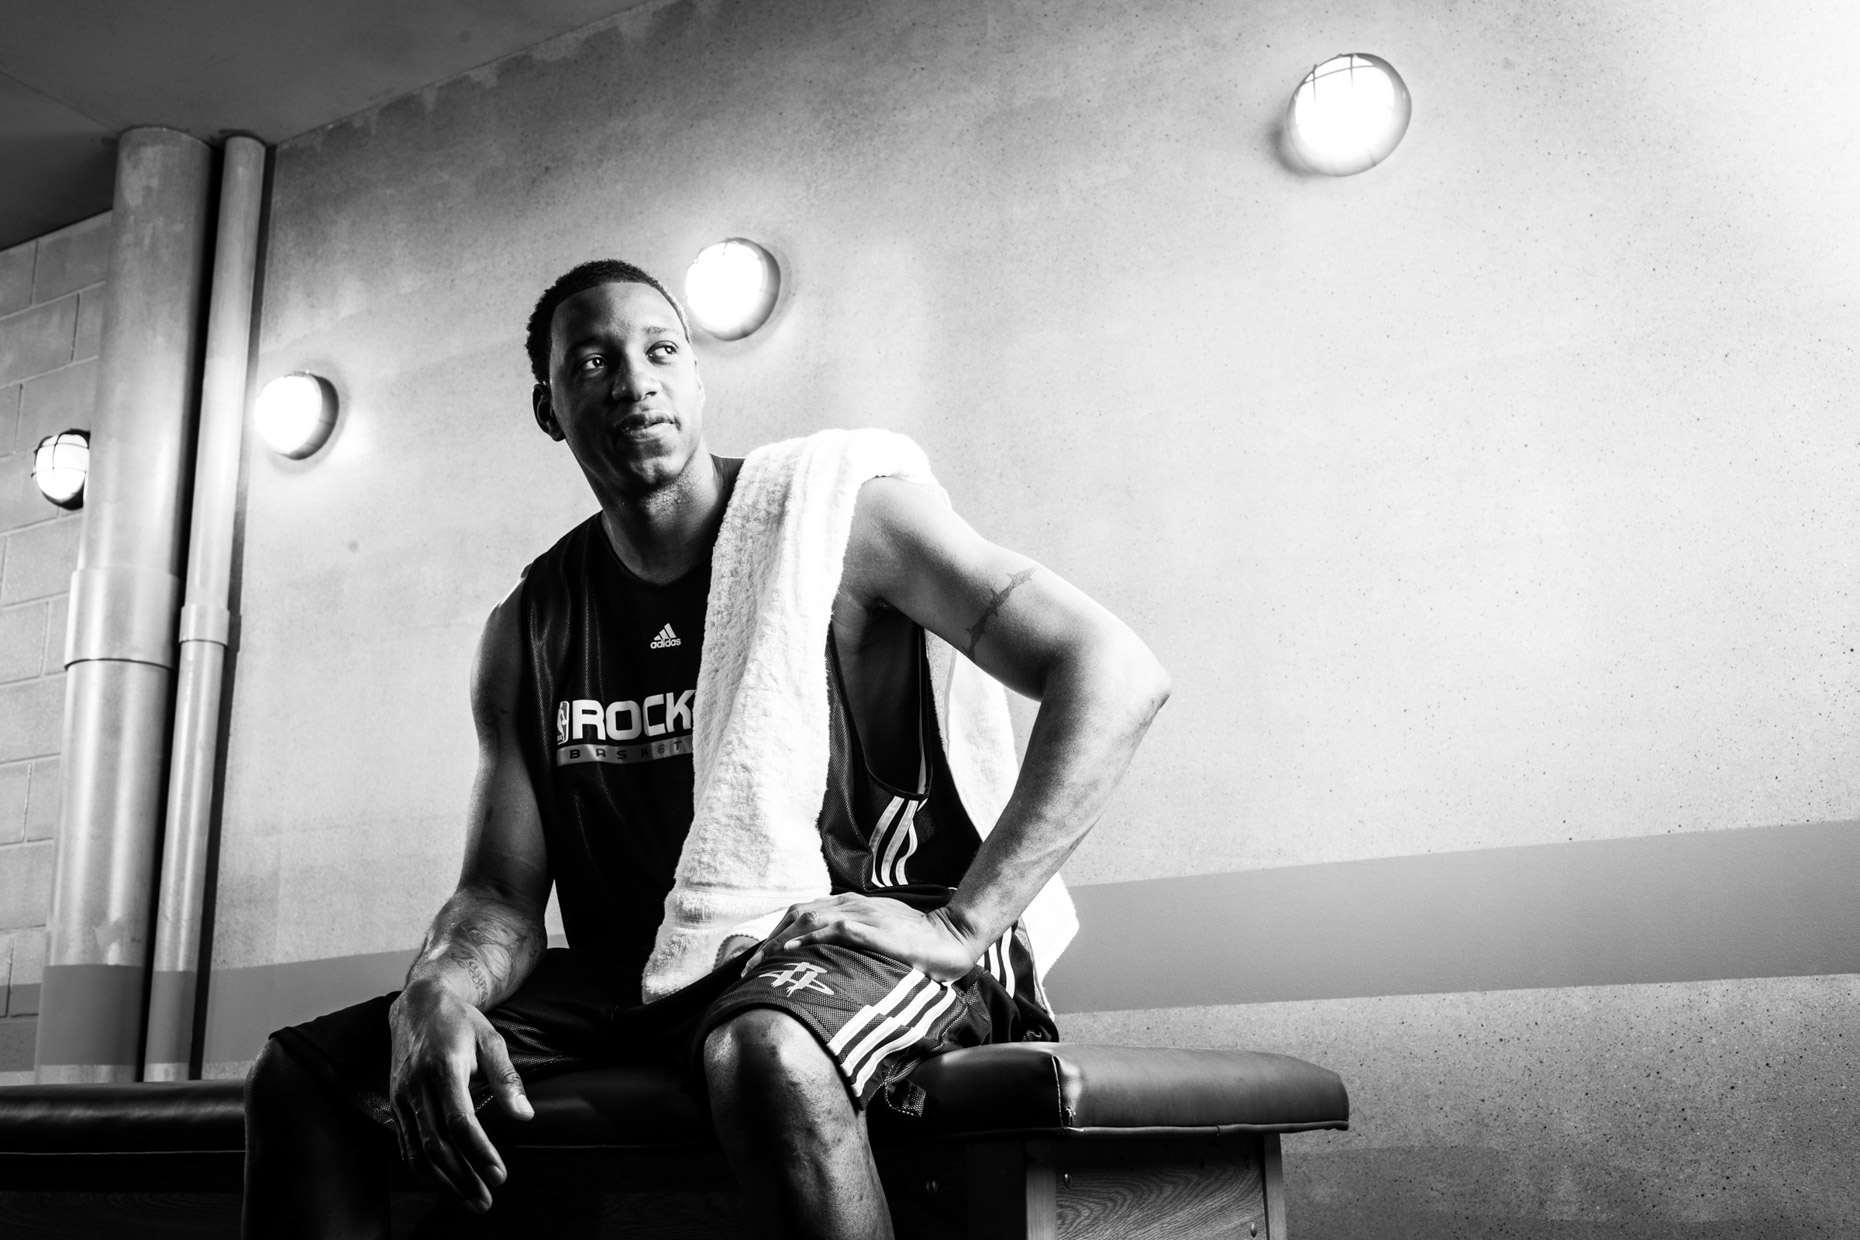 NBA basketball player Tracy McGrady, photographed by dramatic sport photographer Andy Batt